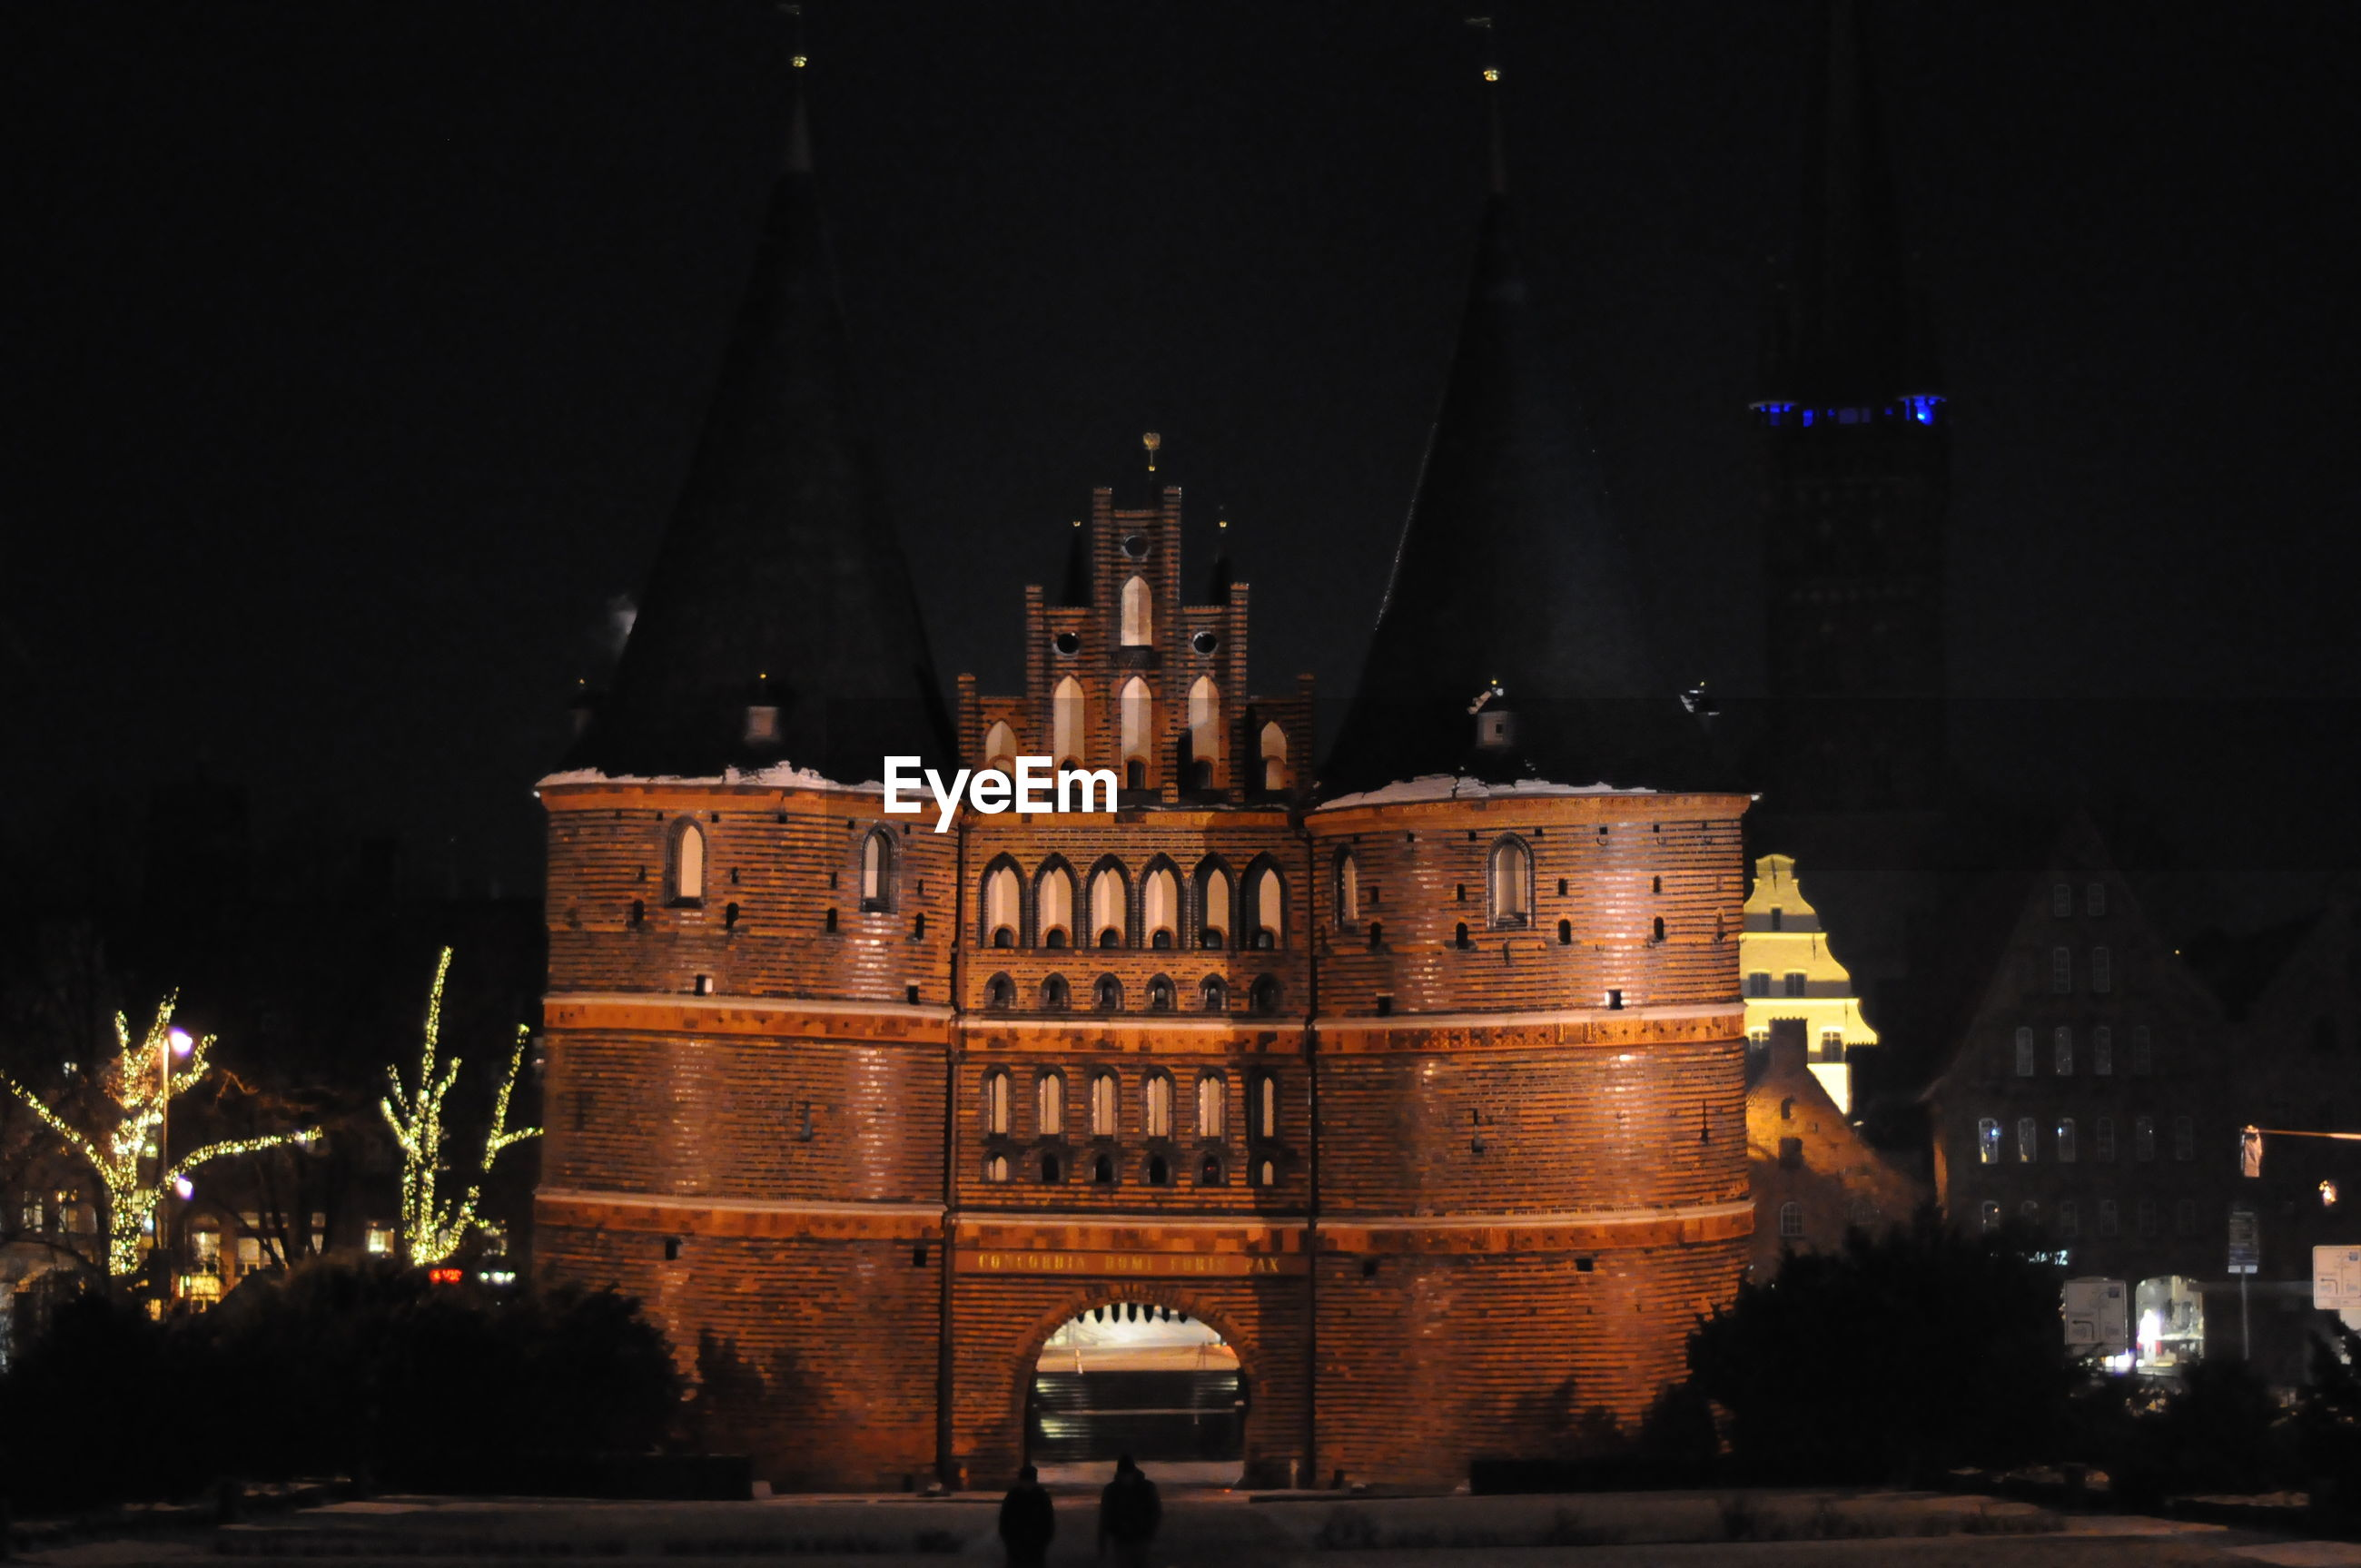 Holstentor against sky in city at night